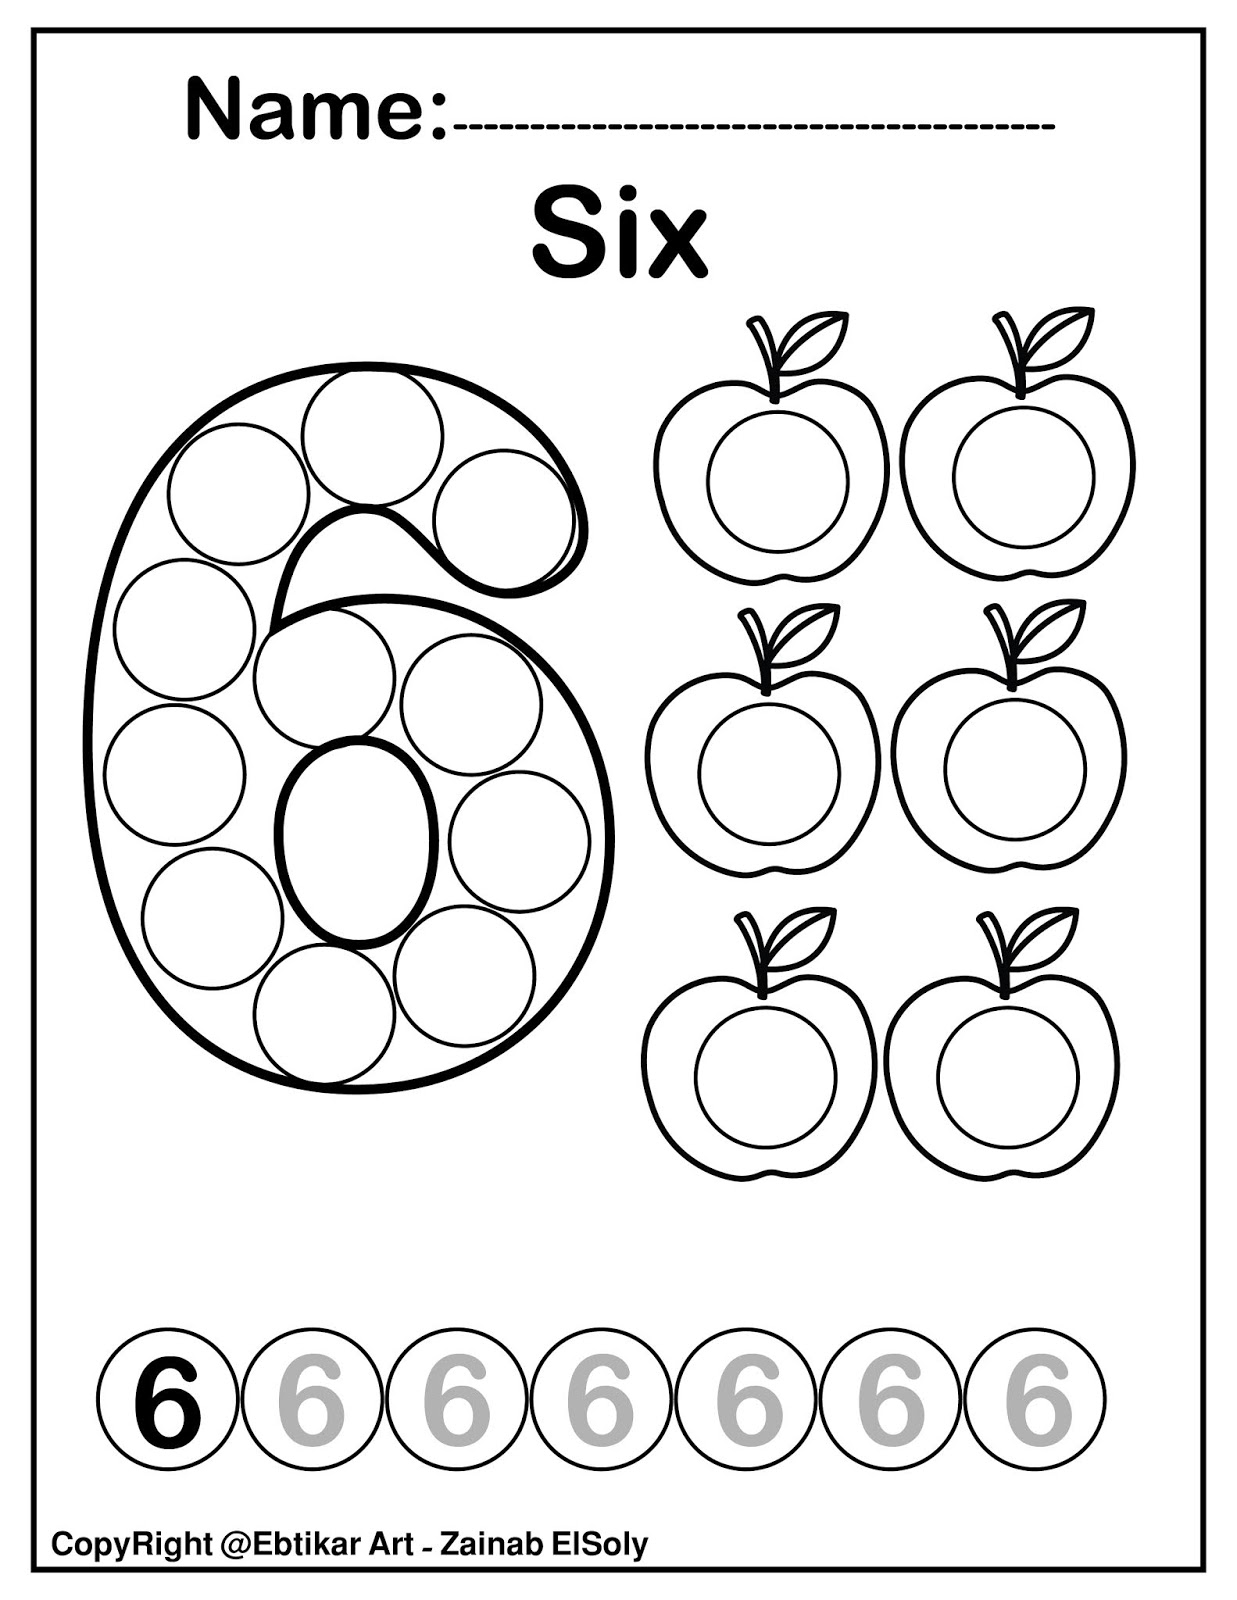 Hddot To Dot Coloring Pages For Kindergarten